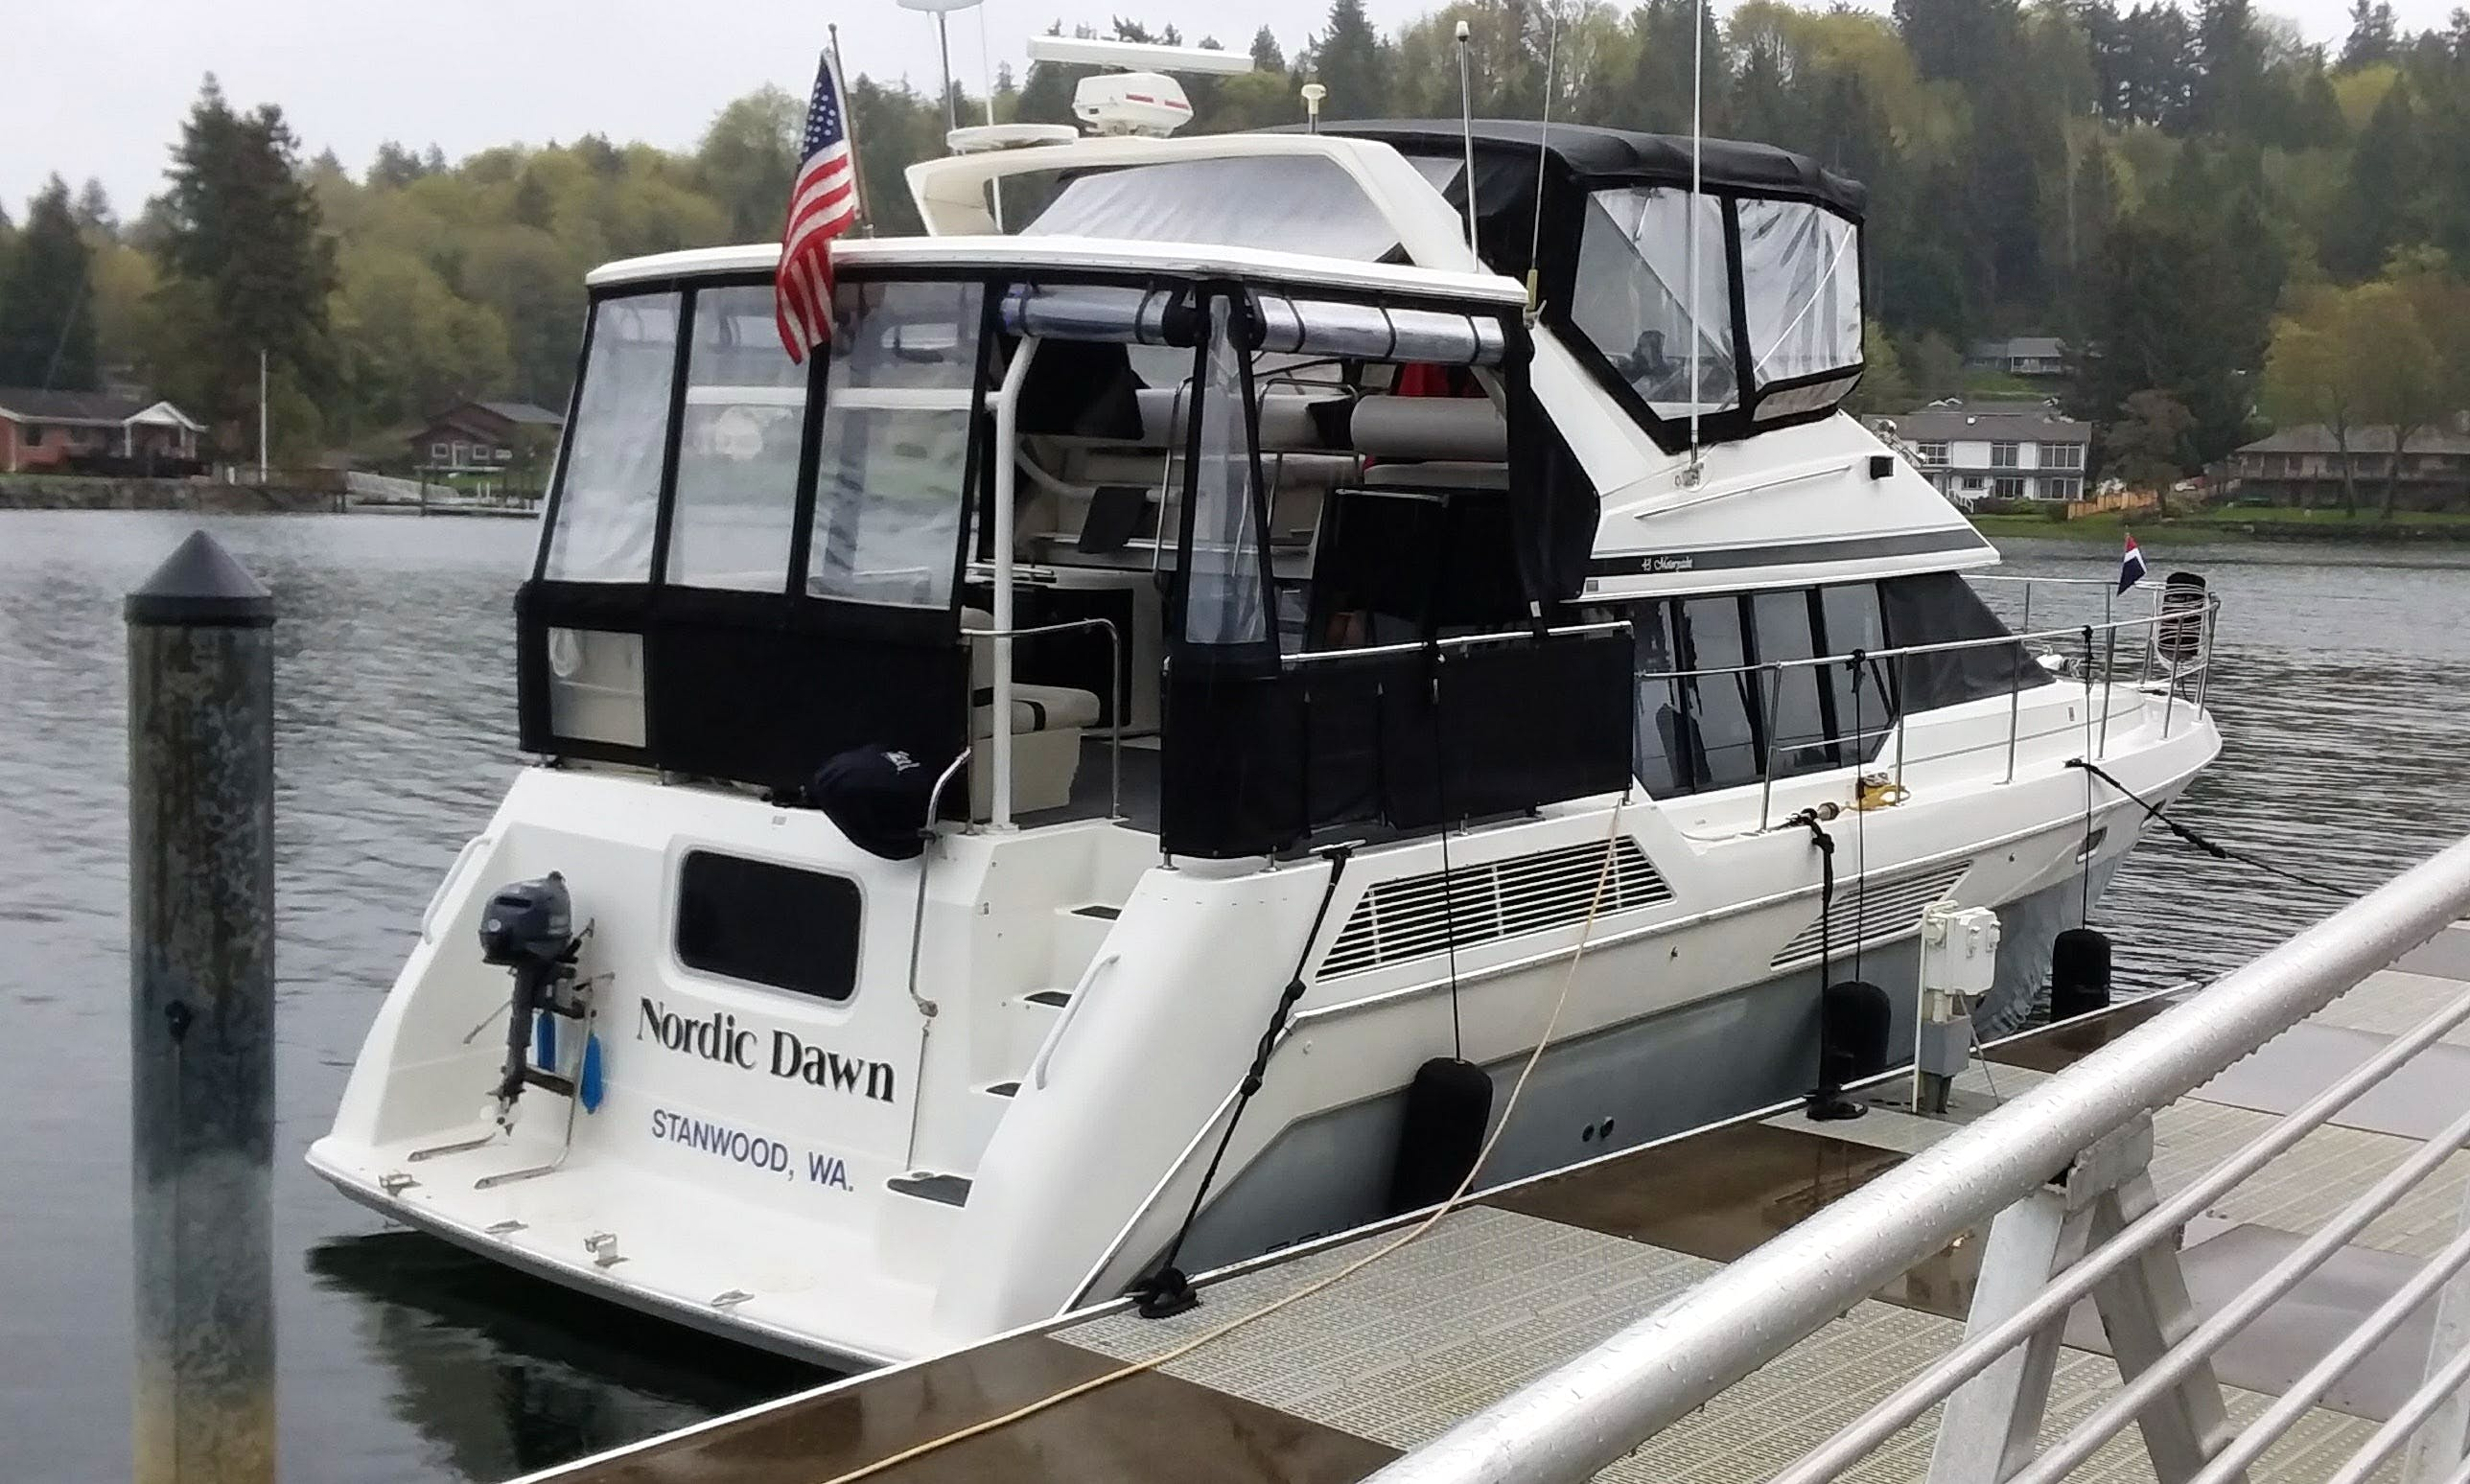 Bayliner 4387 Motor Yacht Charter for Up to 20 People in Seattle, WA